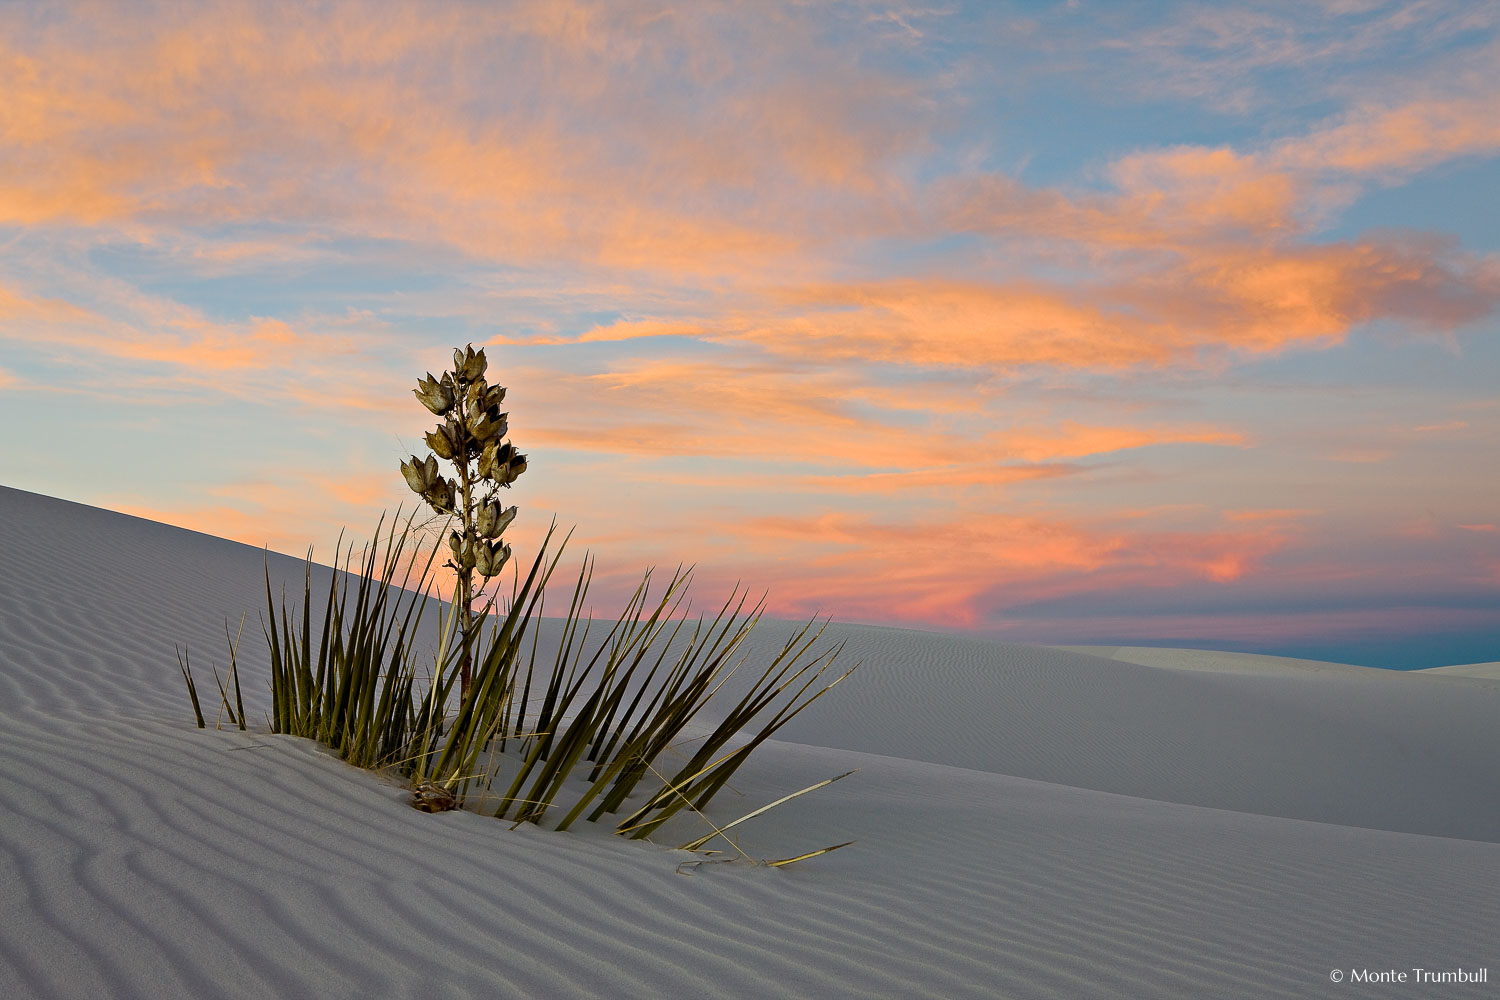 MT-20090107-172100-0013-Edit-New-Mexico-White-Sands-National-Monument-yucca-sunset-pastel-skies.jpg